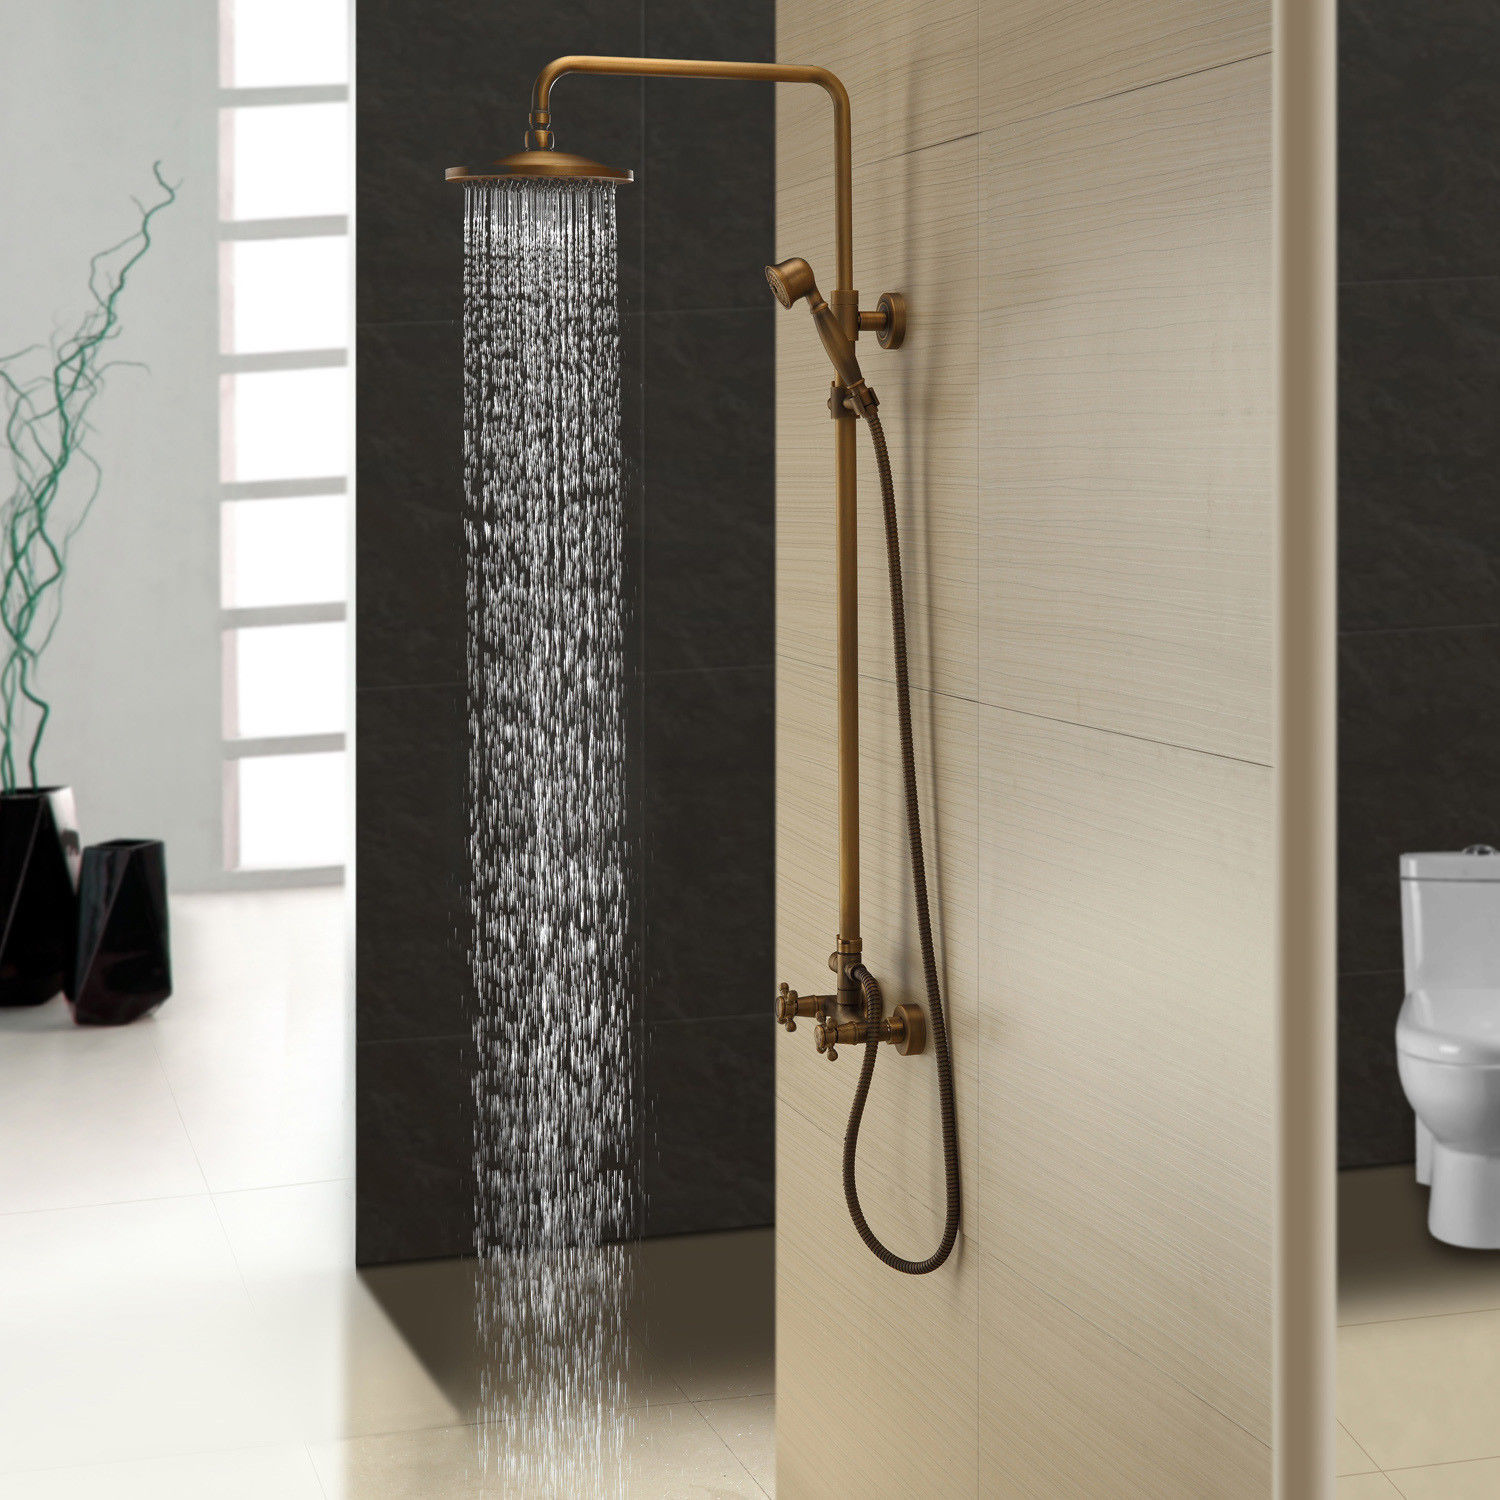 Details About Classic Exposed Antique Brass Round Rain Shower Kit With Handshower Solid Brass